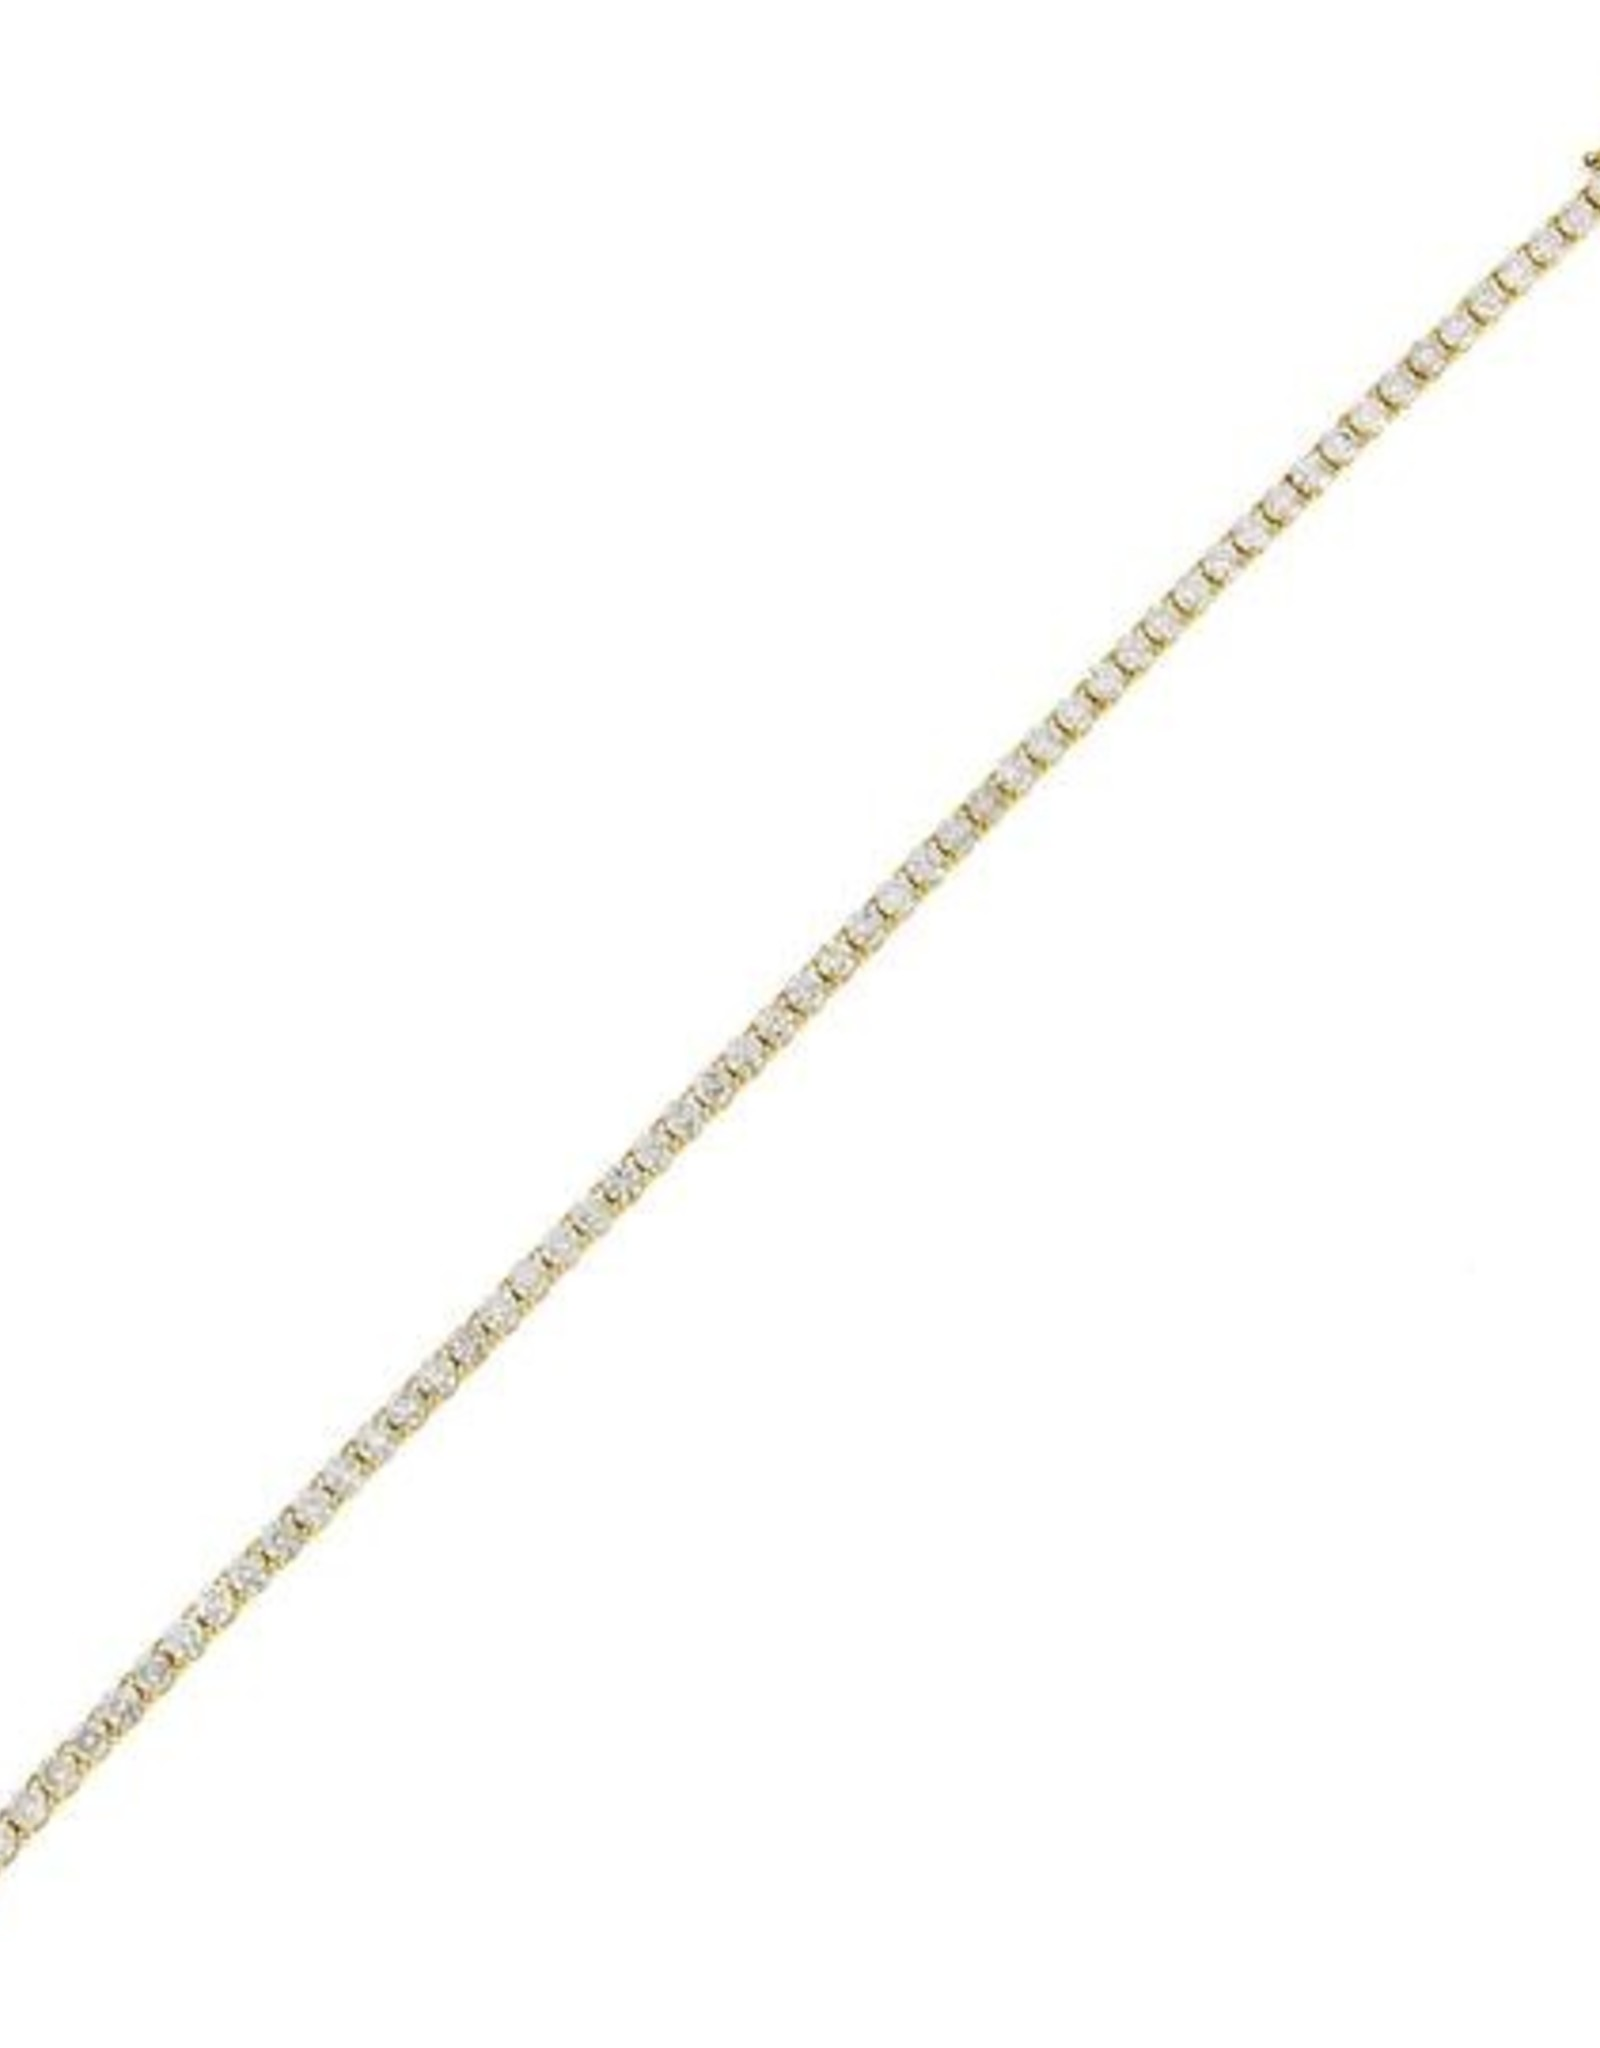 Adinas Diamond Tennis Bracelet 14K